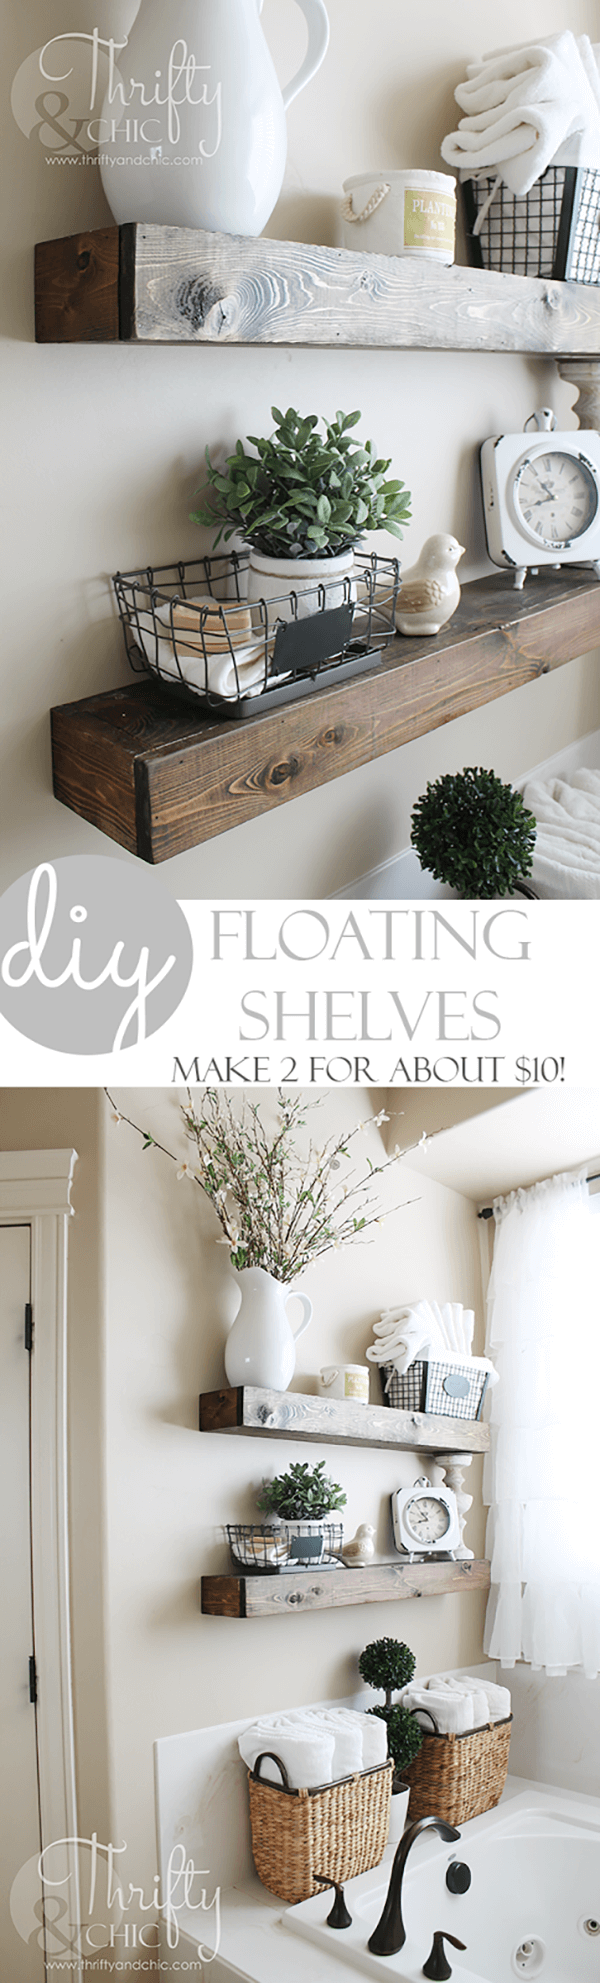 best diy bathroom shelf ideas and designs for homebnc floating shelves small petite chateau inspiration kitchen island kitchens media set furniture wall sink office crown molding